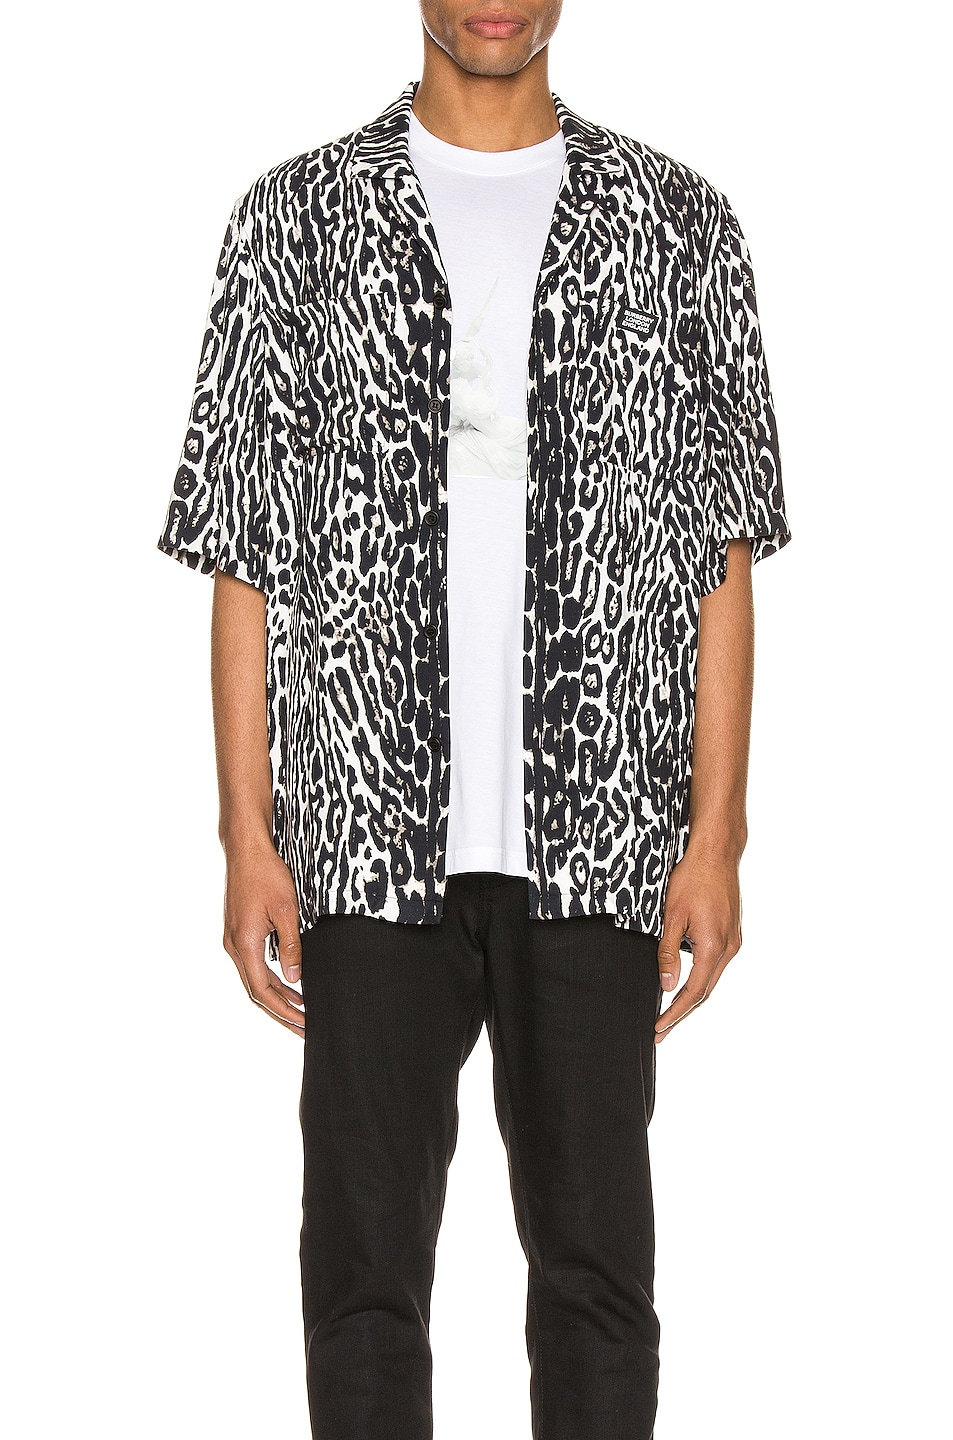 Image 1 of Burberry Radley Short Sleeve Shirt in Black IP Pattern